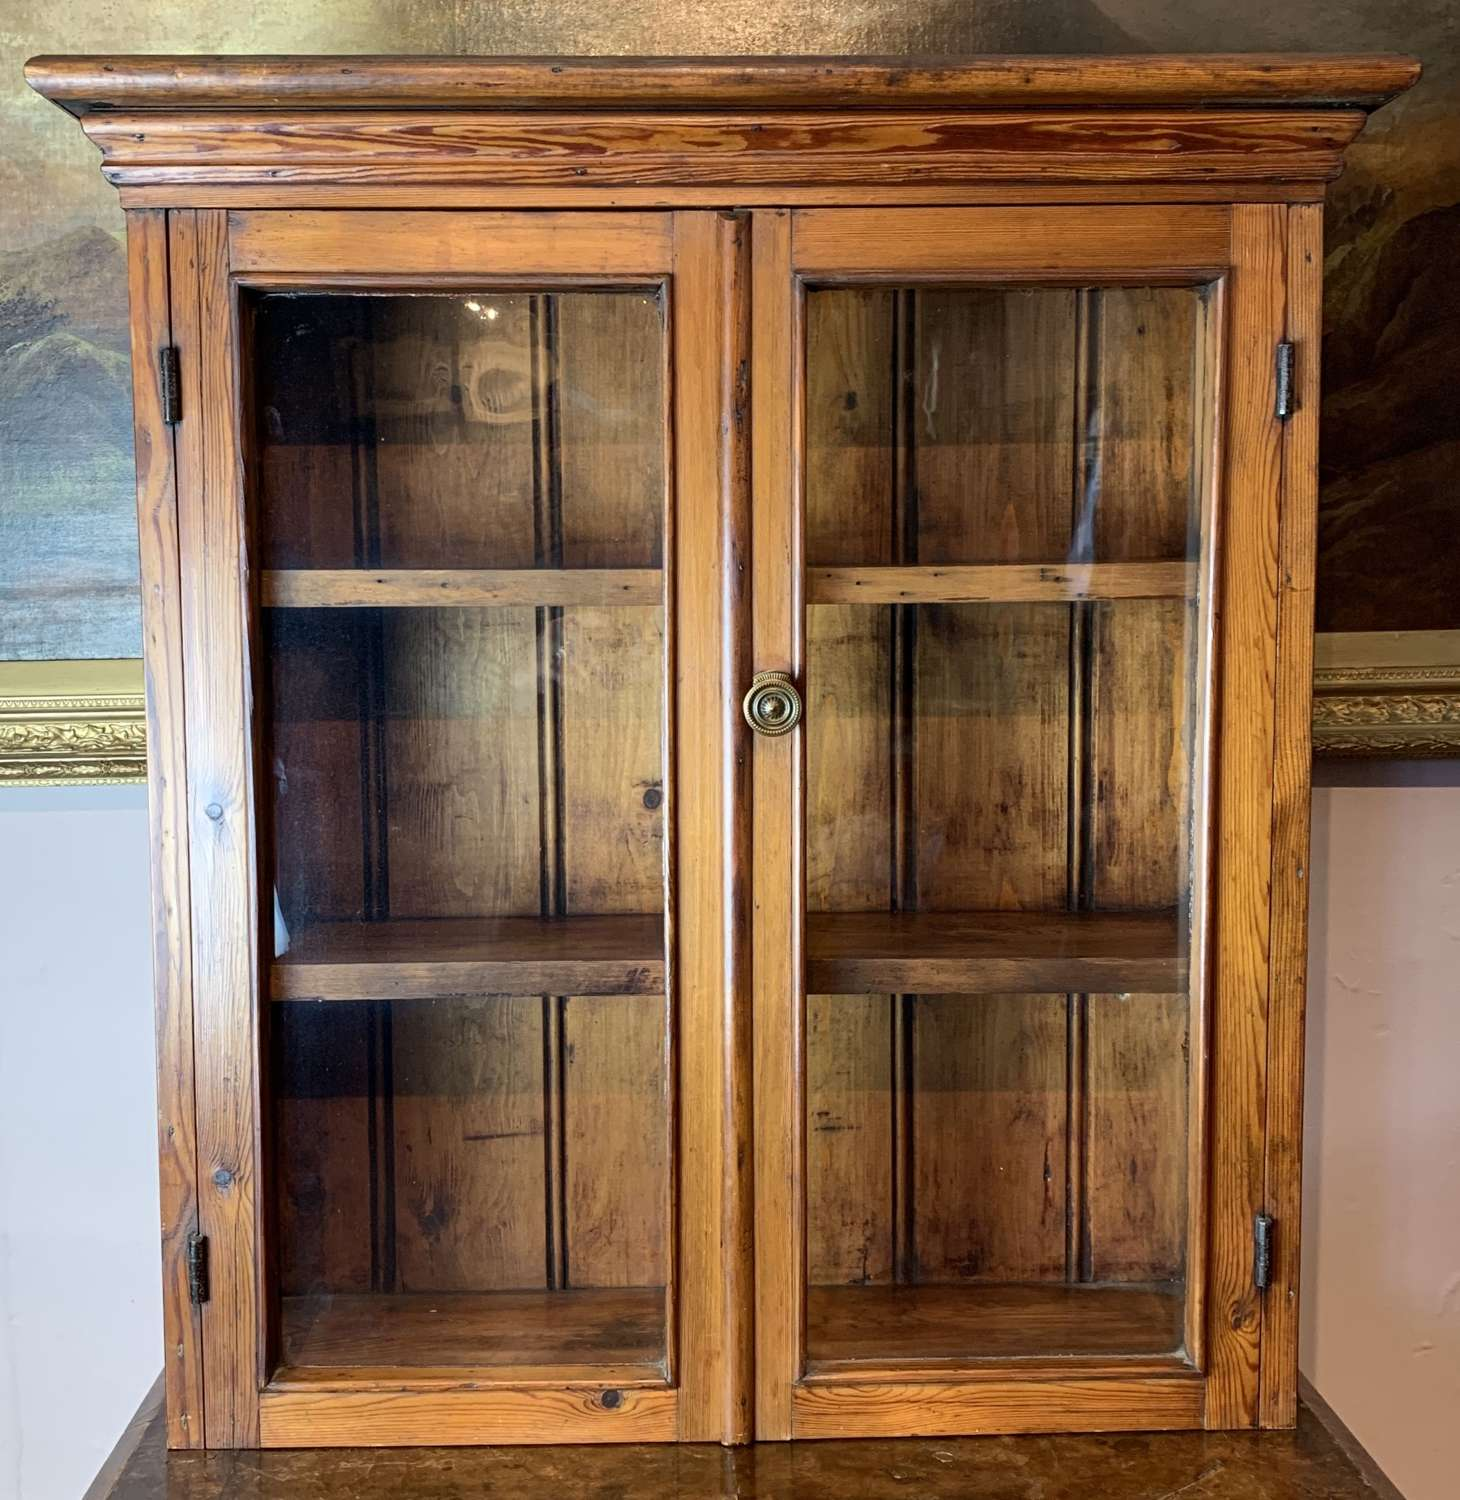 Victorian Pitch Pine Two Door Glazed Wall Cabinet